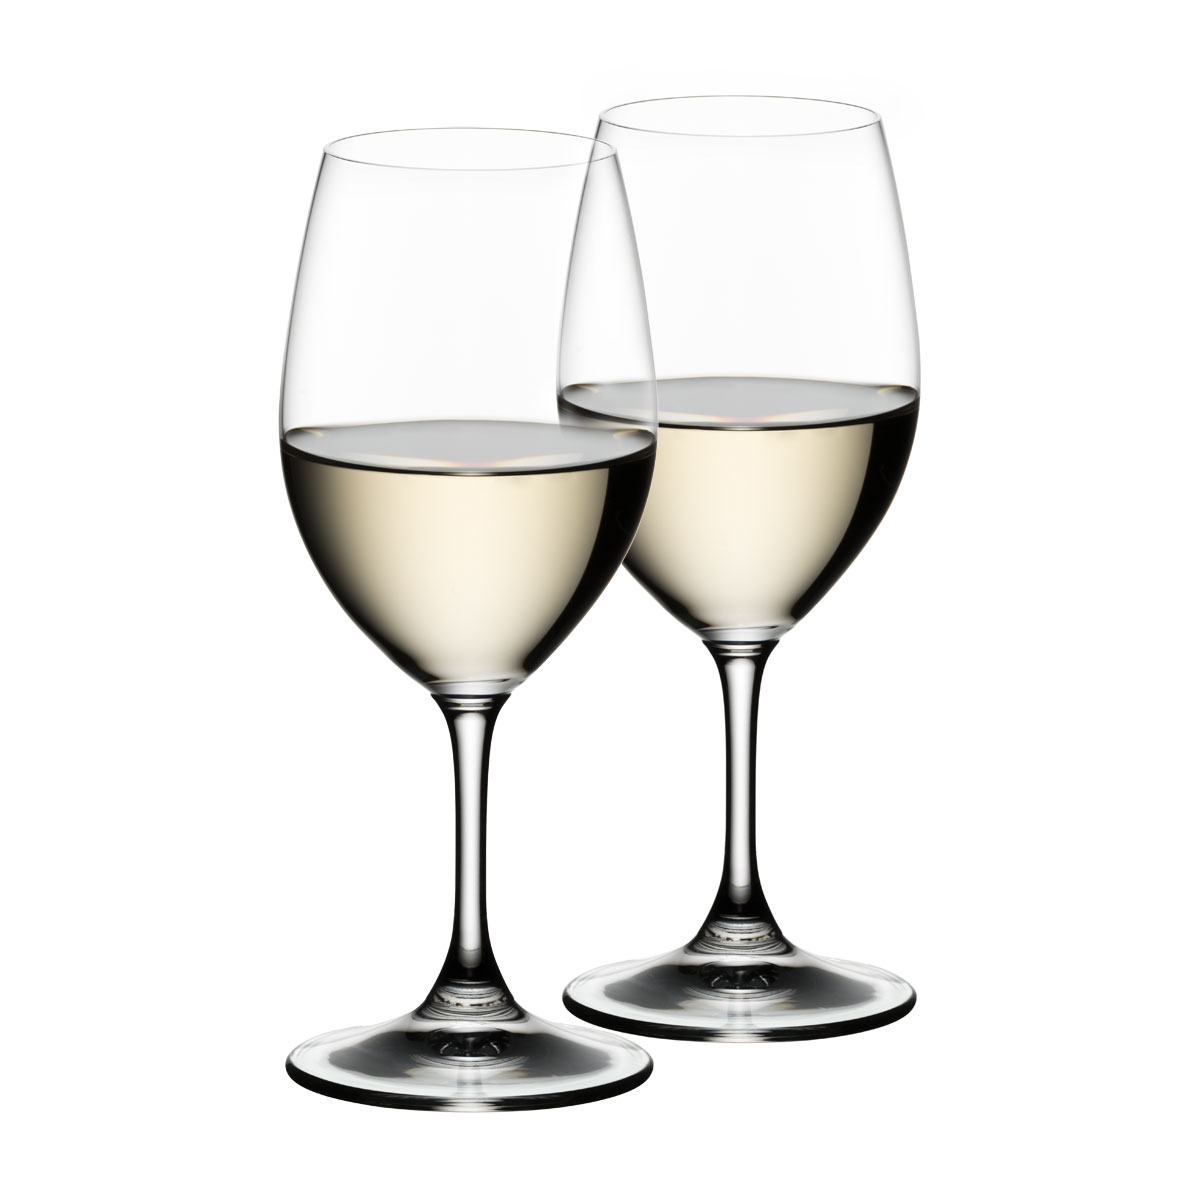 Riedel Ouverture, White Wine Crystal Glasses, Pair